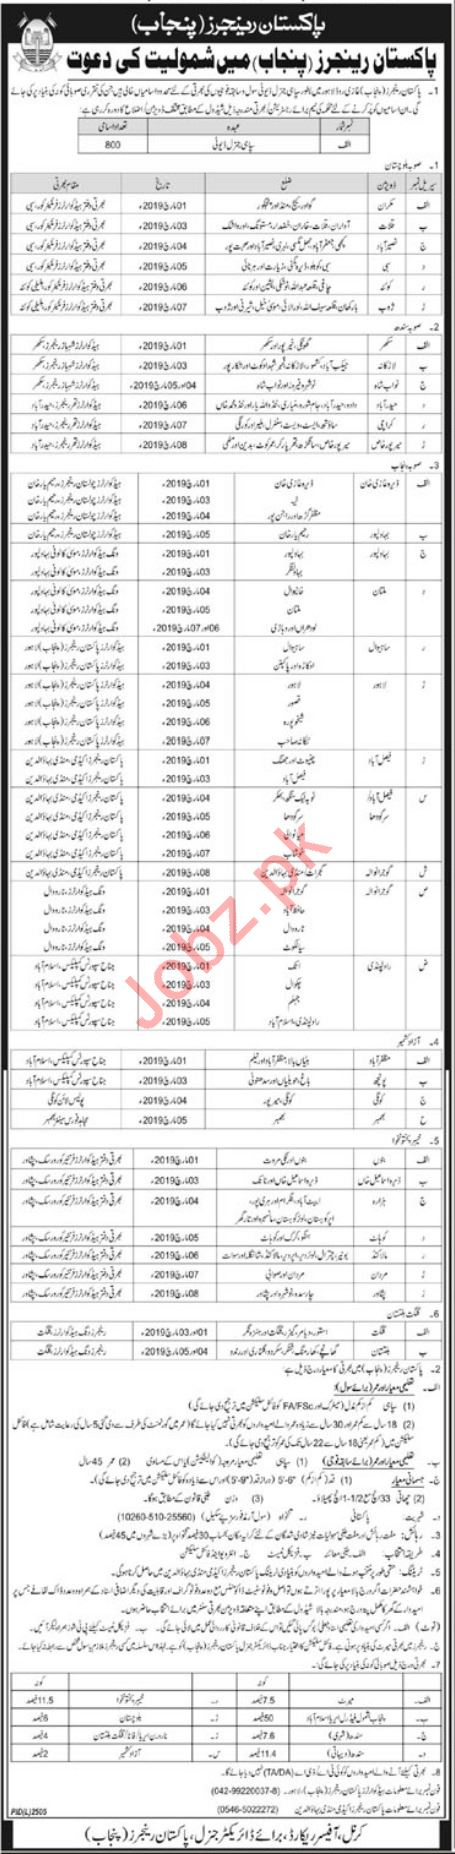 Pakistan Rangers Punjab Jobs 2019 for Soldiers